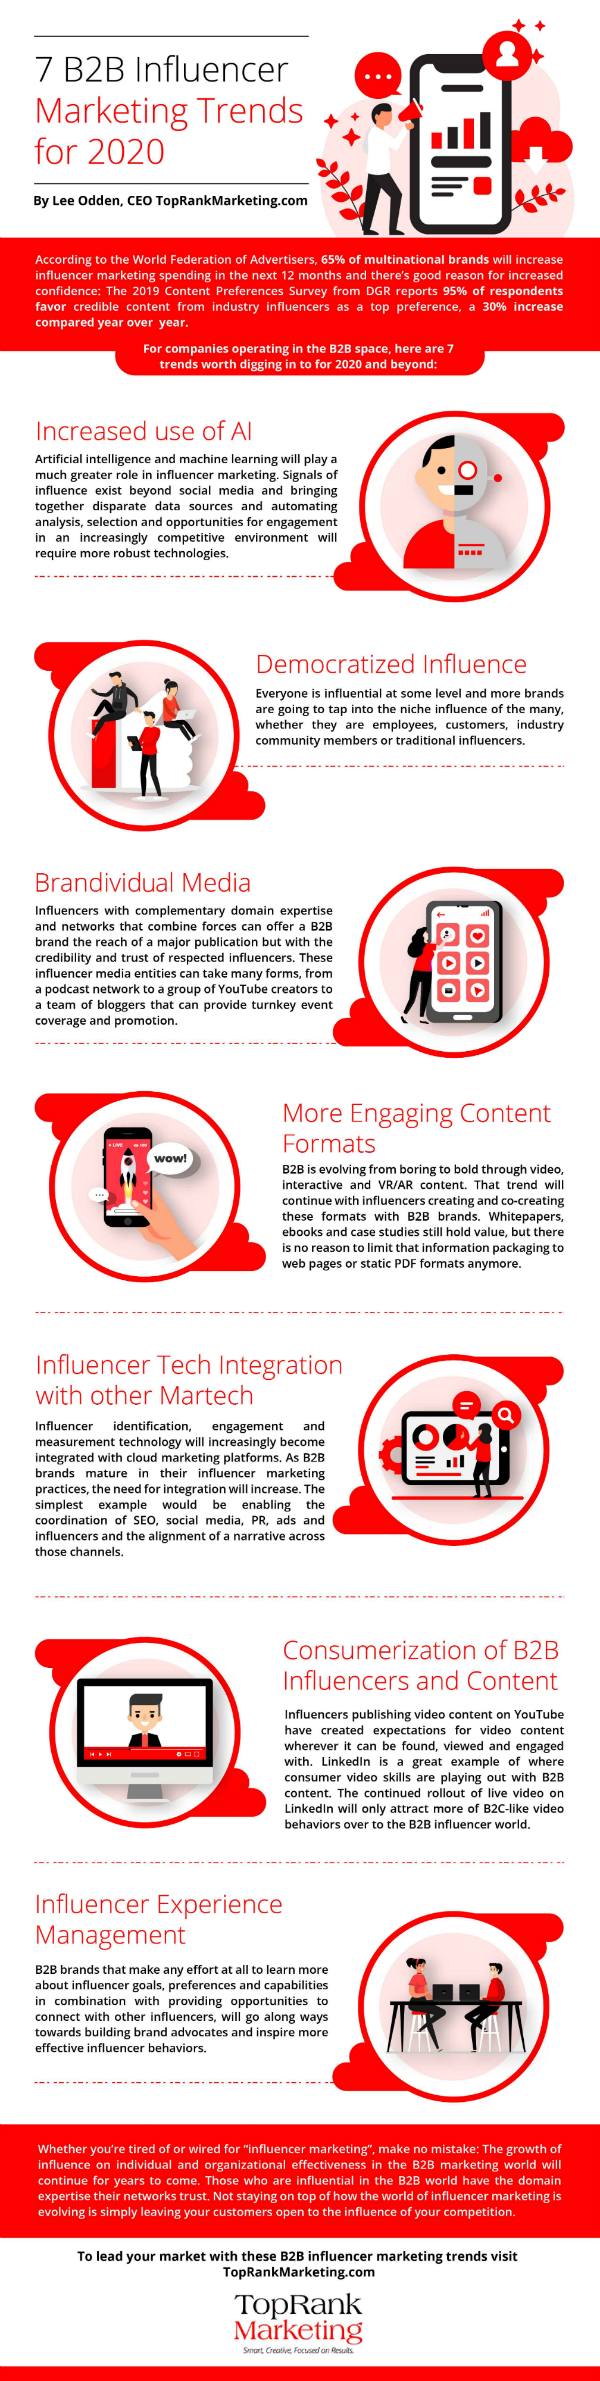 B2B influencer marketing trends